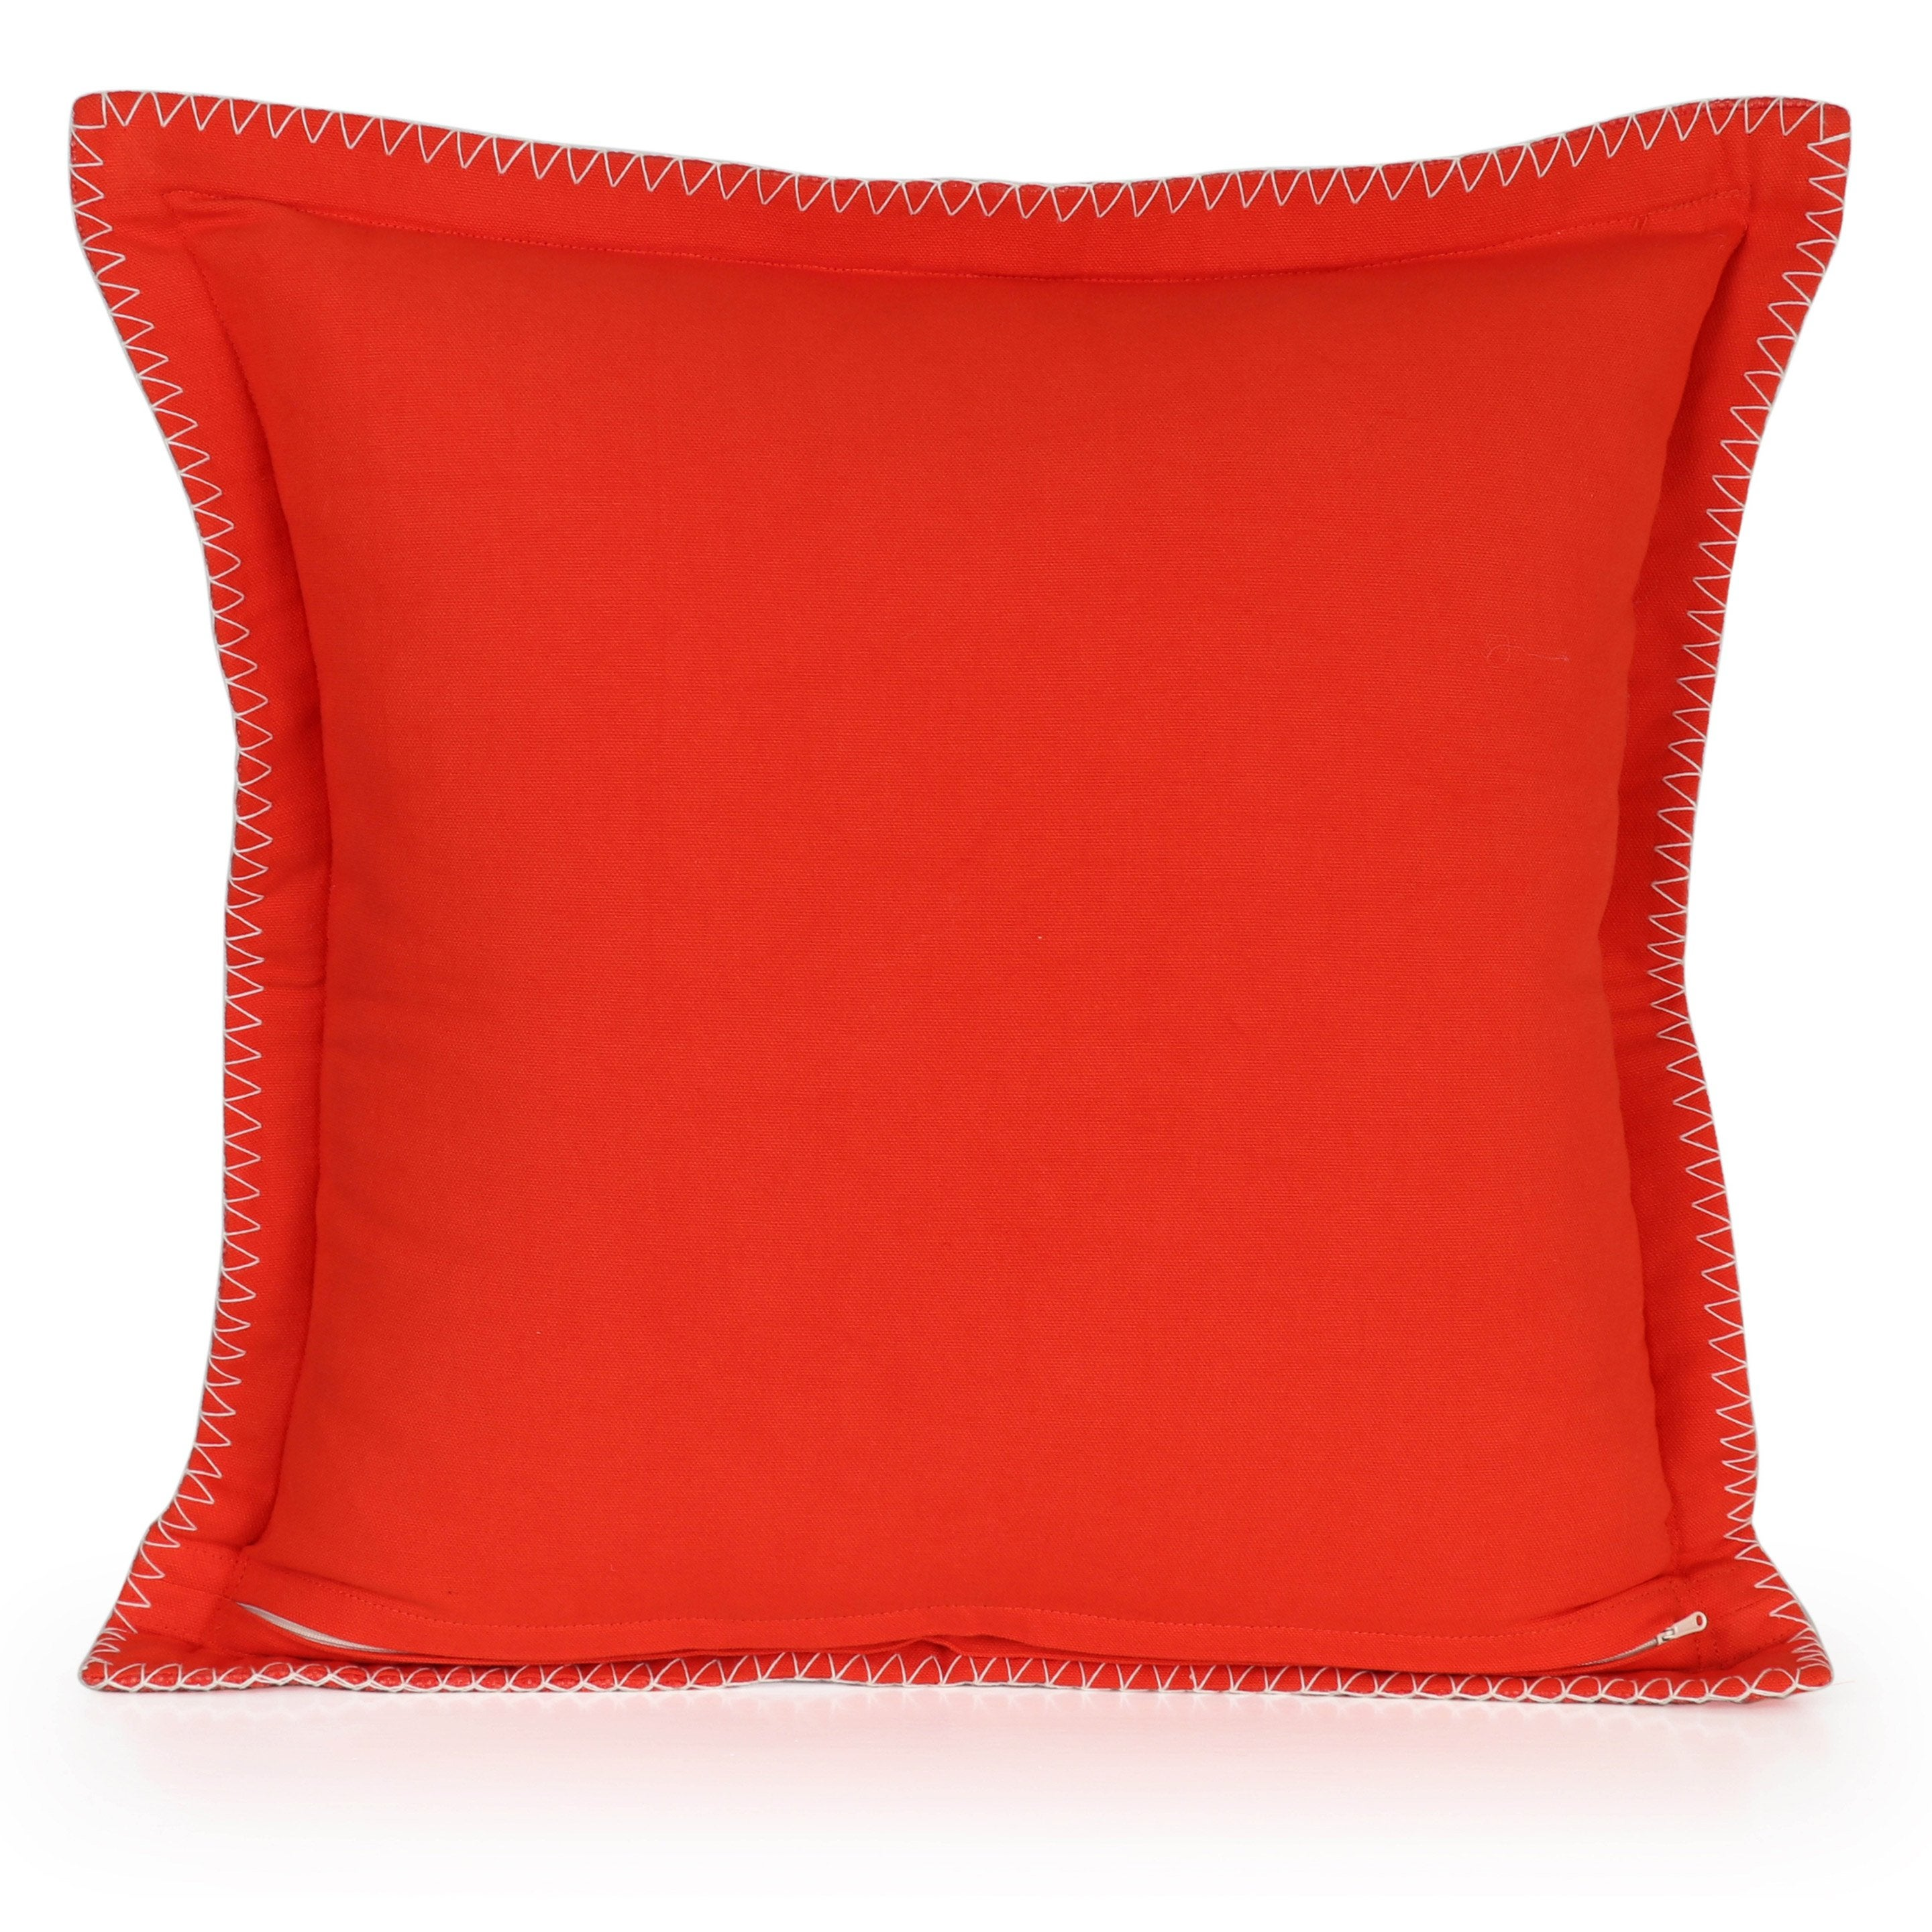 Coussin INSPIRE, rouge chili l.45 x H.45 cm